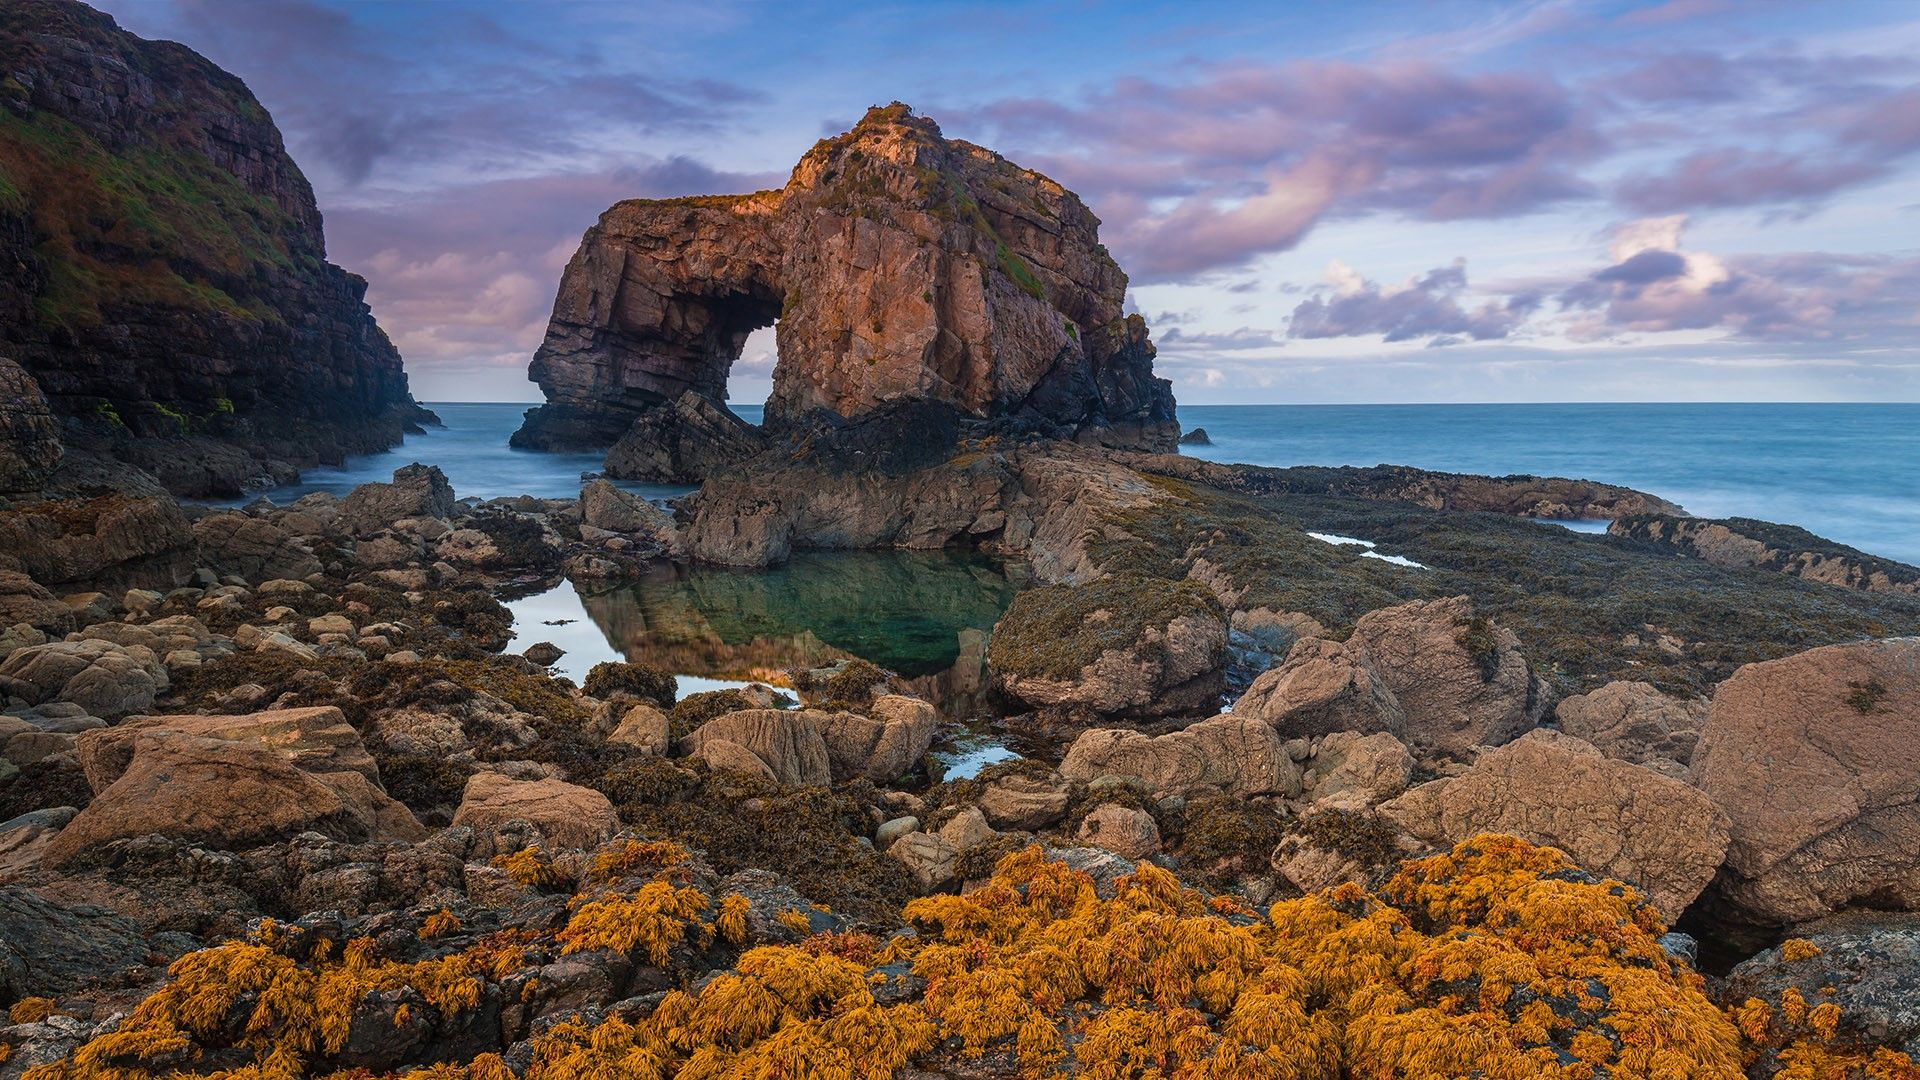 Great Pollet Arch, Fanad Head, Ireland. [Desktop wallpaper